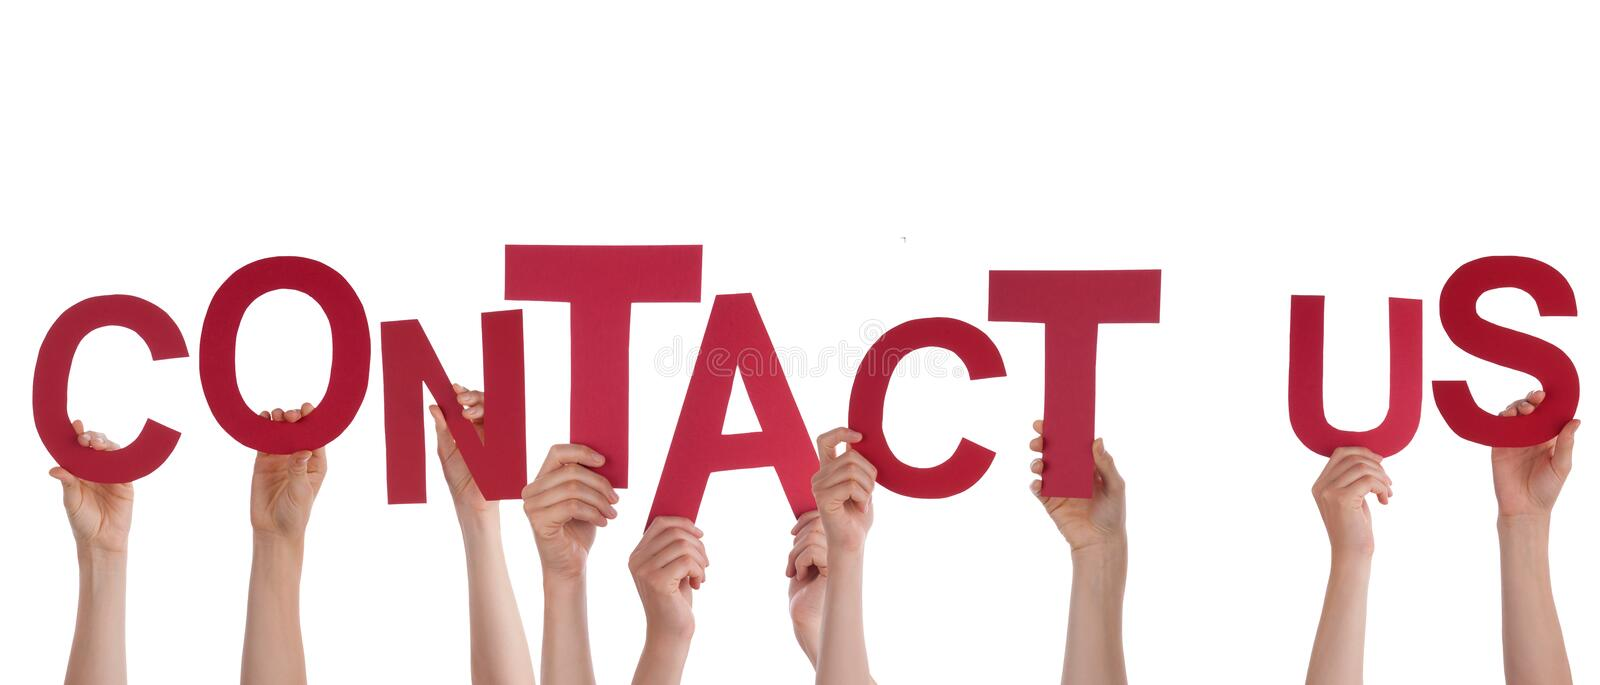 Hands Holding Contact Us. Many Hands Holding the Red Words Contact Us, Isolated royalty free stock photos